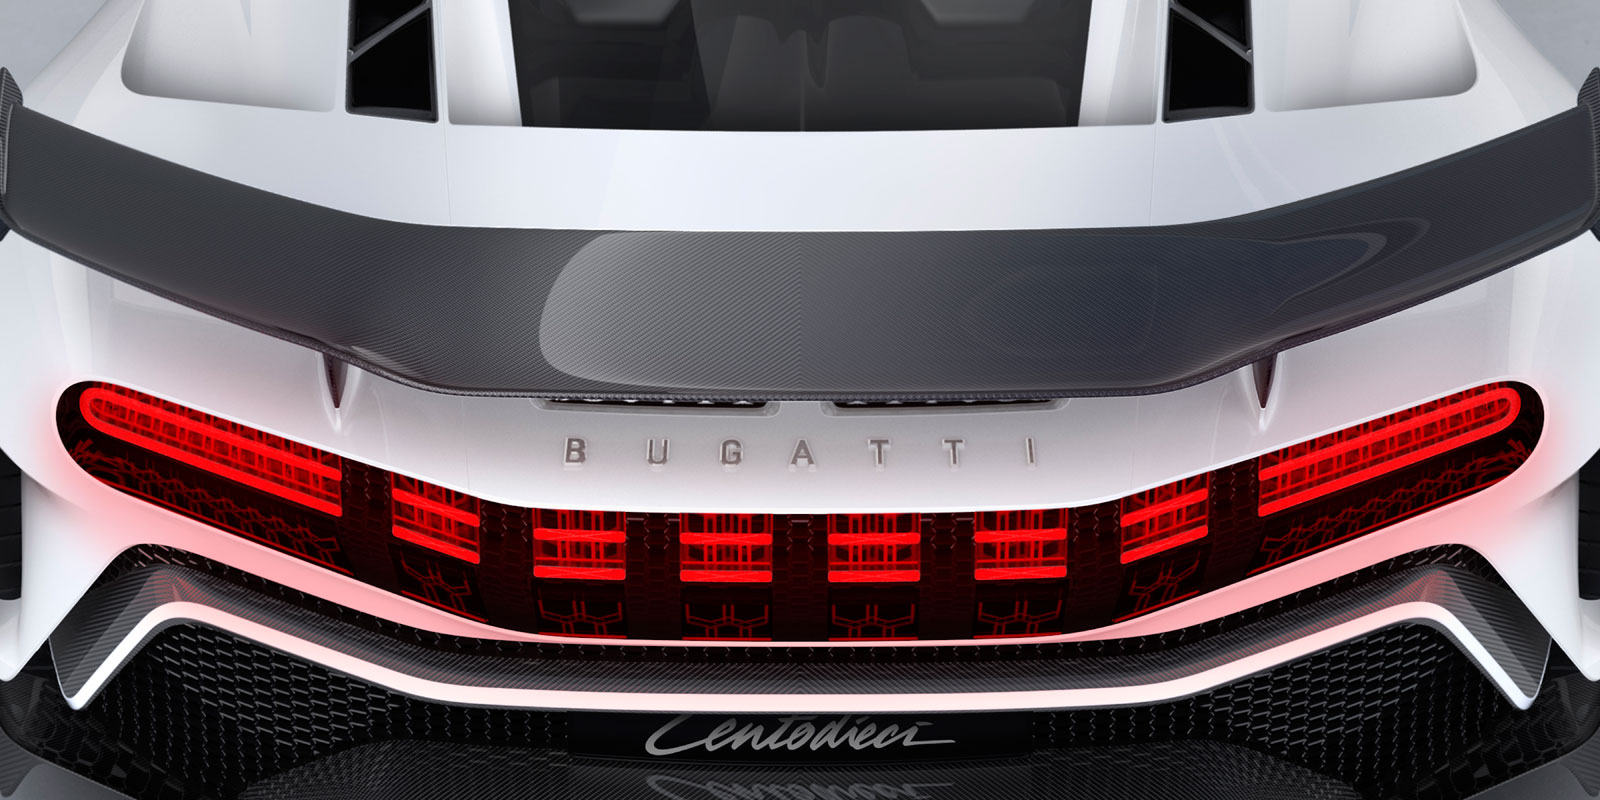 Bugatti Centodieci Rear end detail